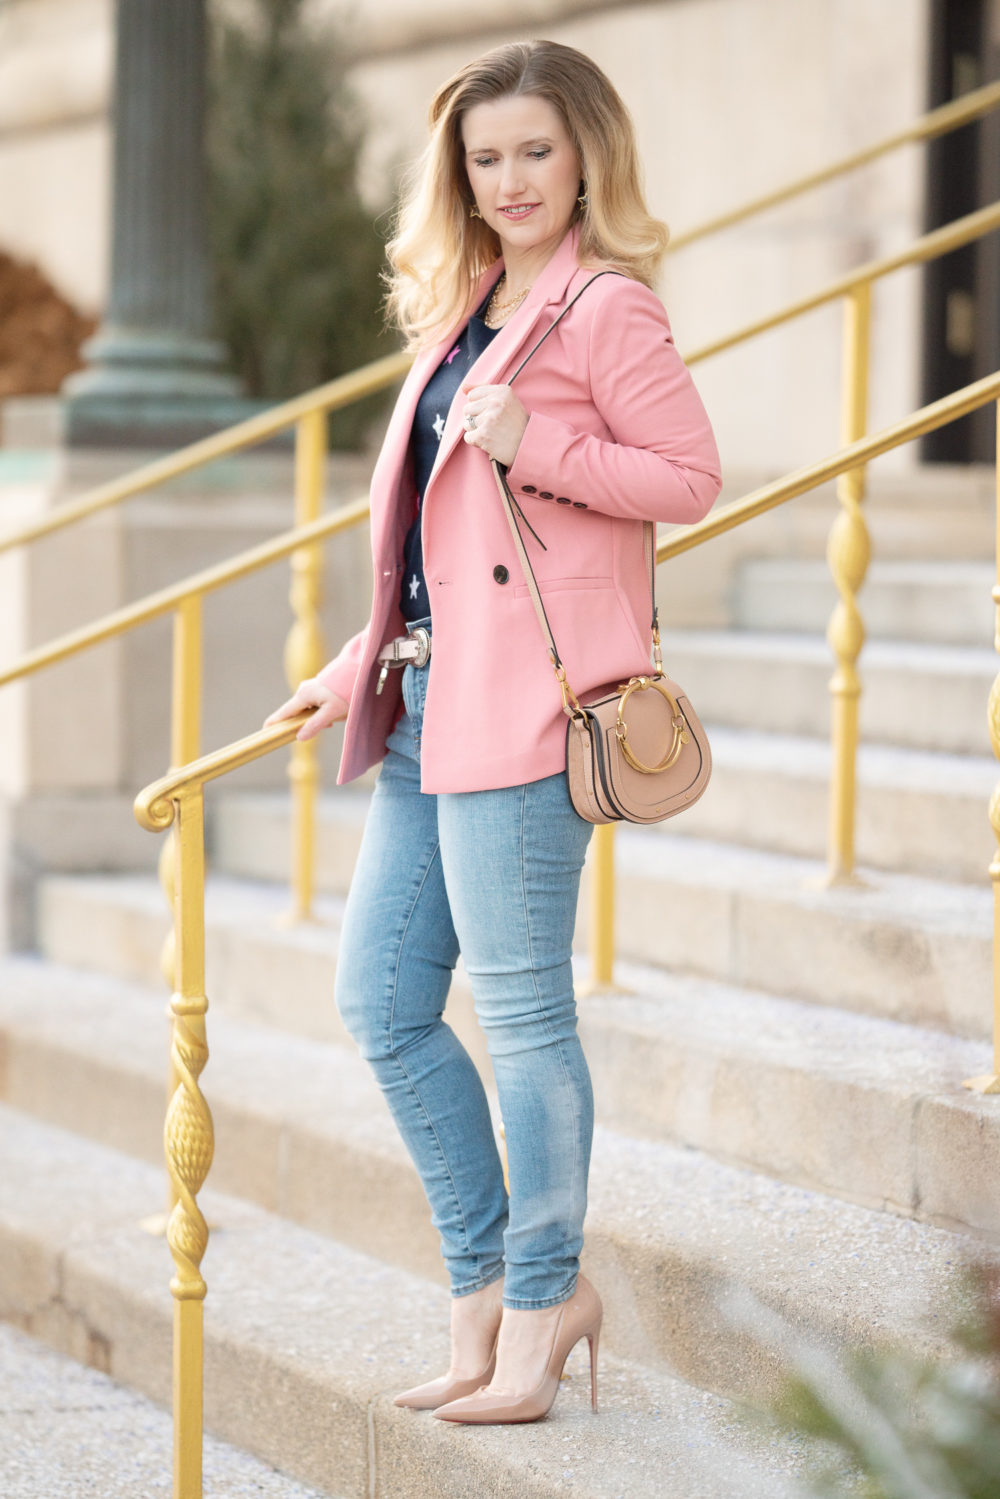 Petite Fashion Blog | Petite Style | Halogen Pink Blazer | J. Crew Cashmere Crewneck Sweater in Stars | 9 high-rise toothpick eco jean in light blue wash | Christian Louboutin So Kate Pumps